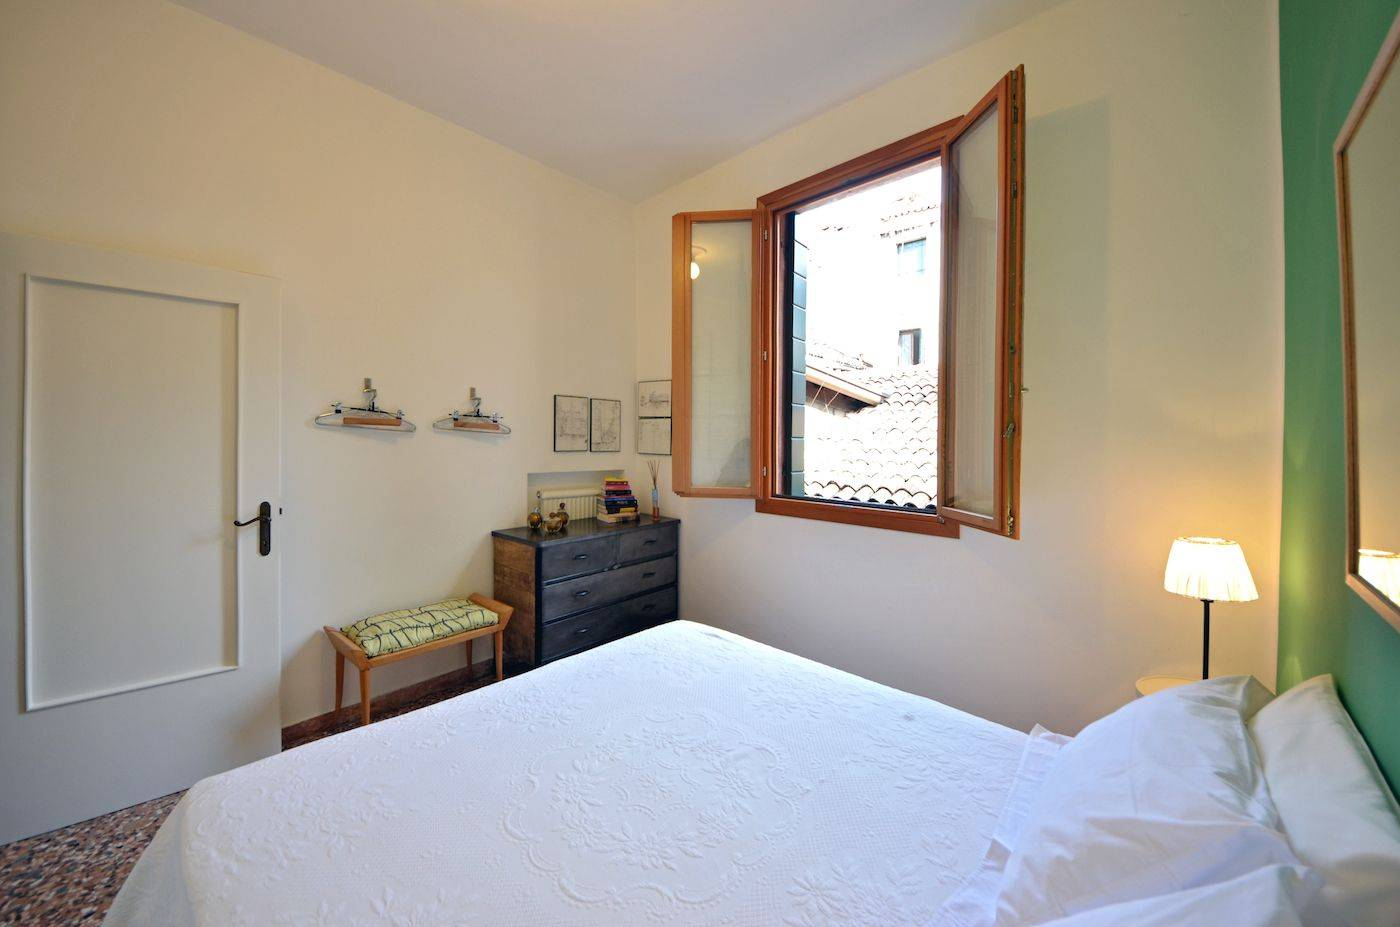 the second bedroom can be used as a double or twin